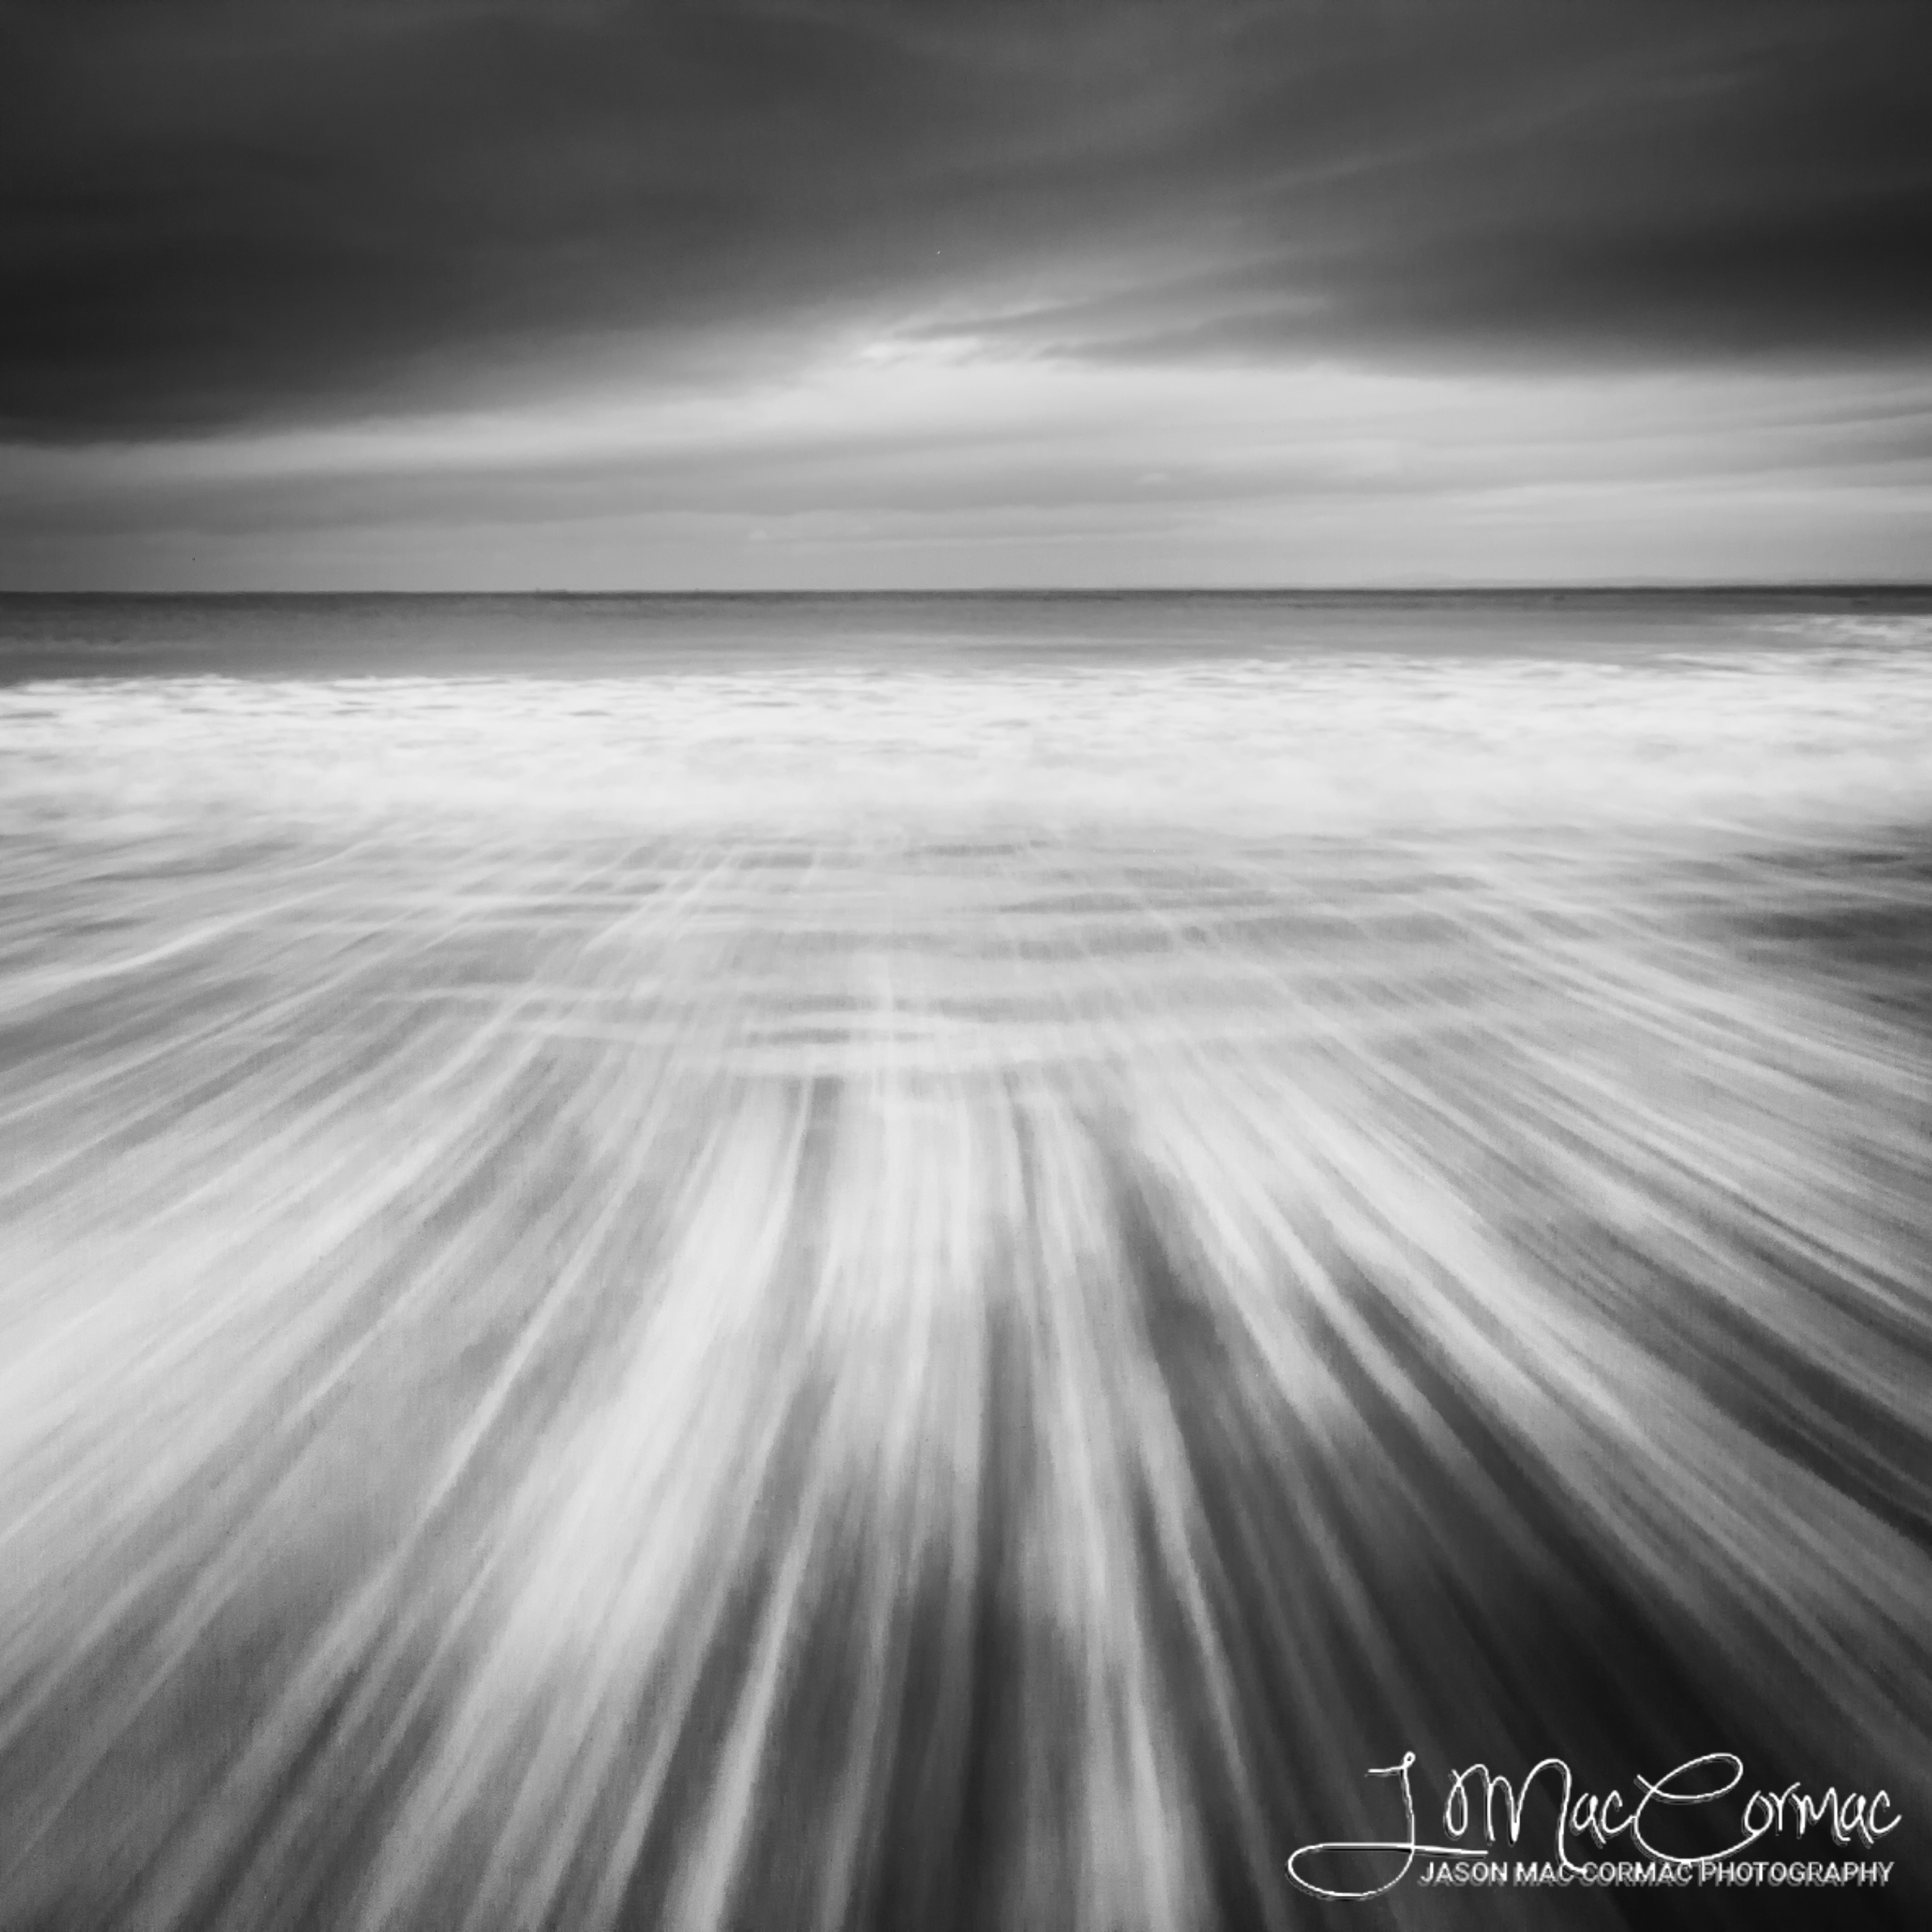 Black and White. Movement of the Ocean